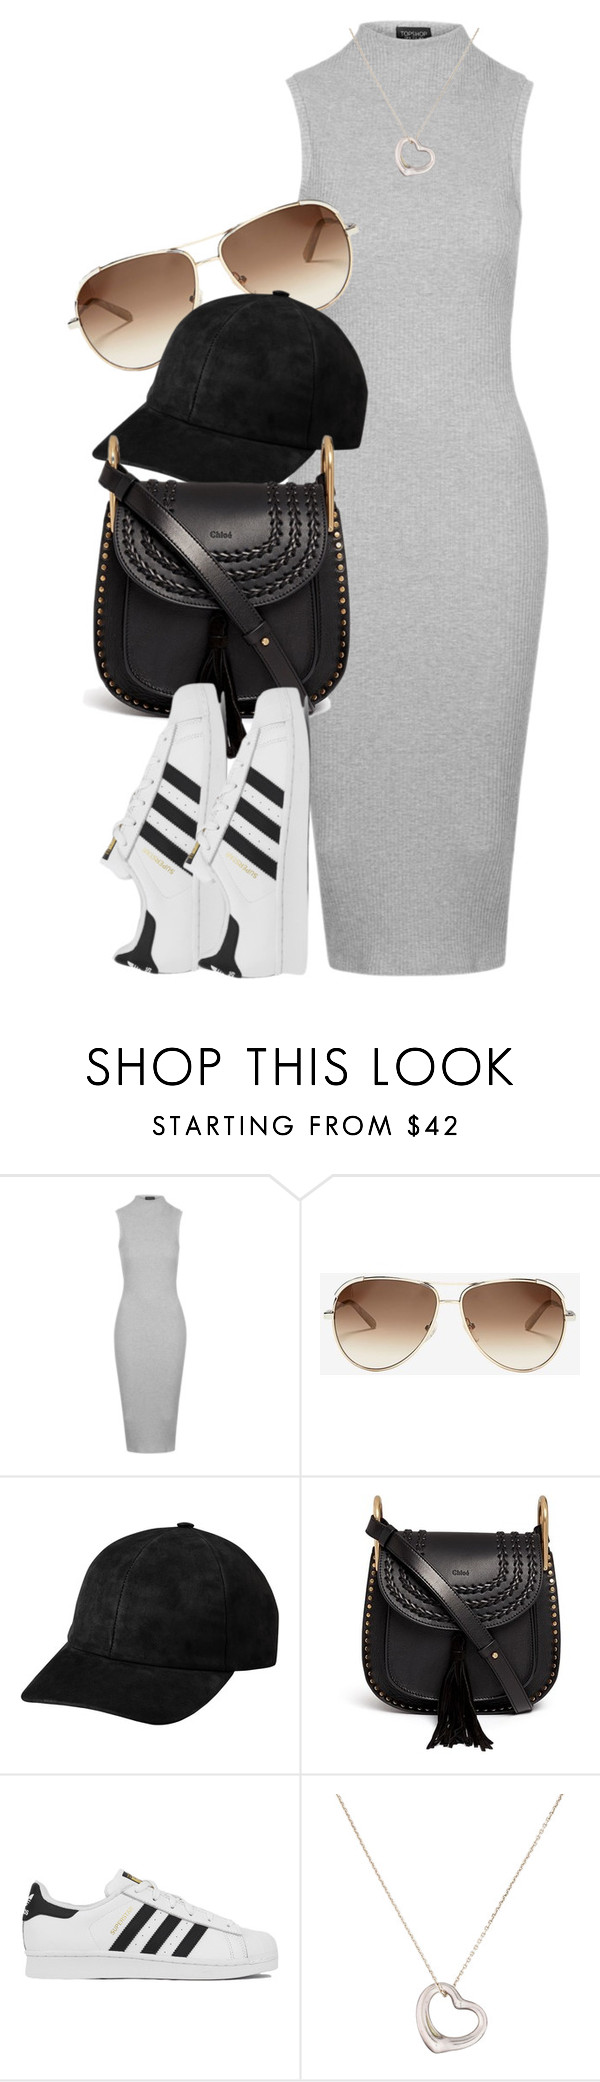 """""""Chloe x Topshop"""" by muddychip-797 ❤ liked on Polyvore featuring Topshop, Chloé, adidas, Tiffany & Co., chloe, fashionset and Topshopstyle"""